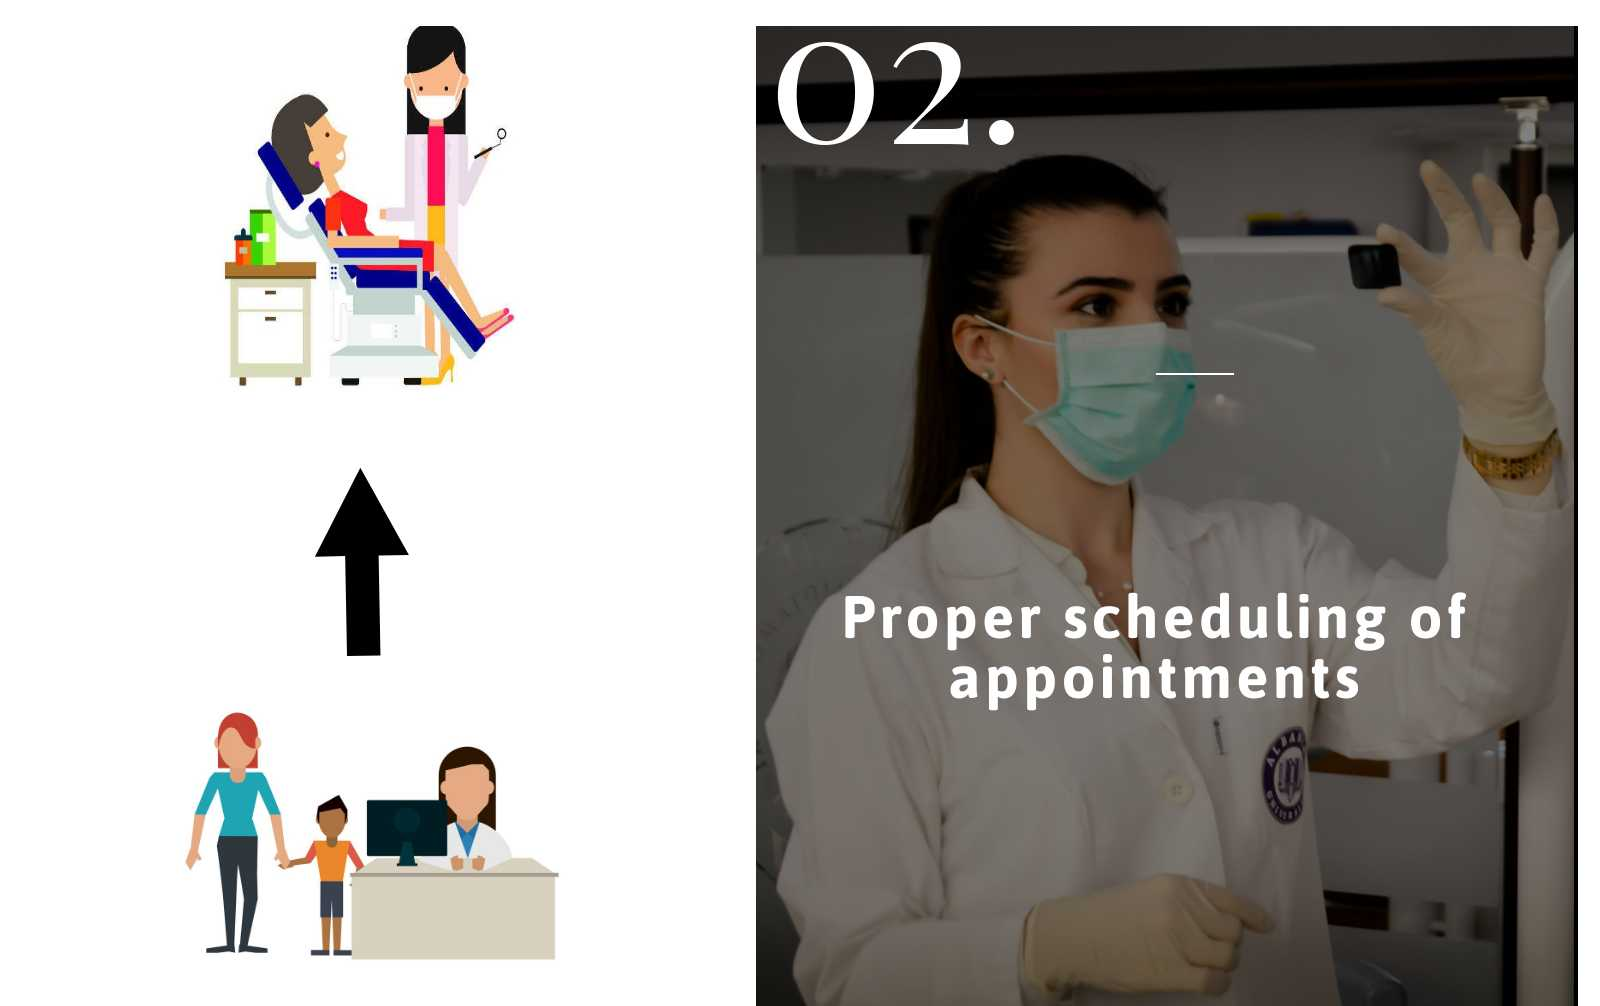 Proper Scheduling of appointments